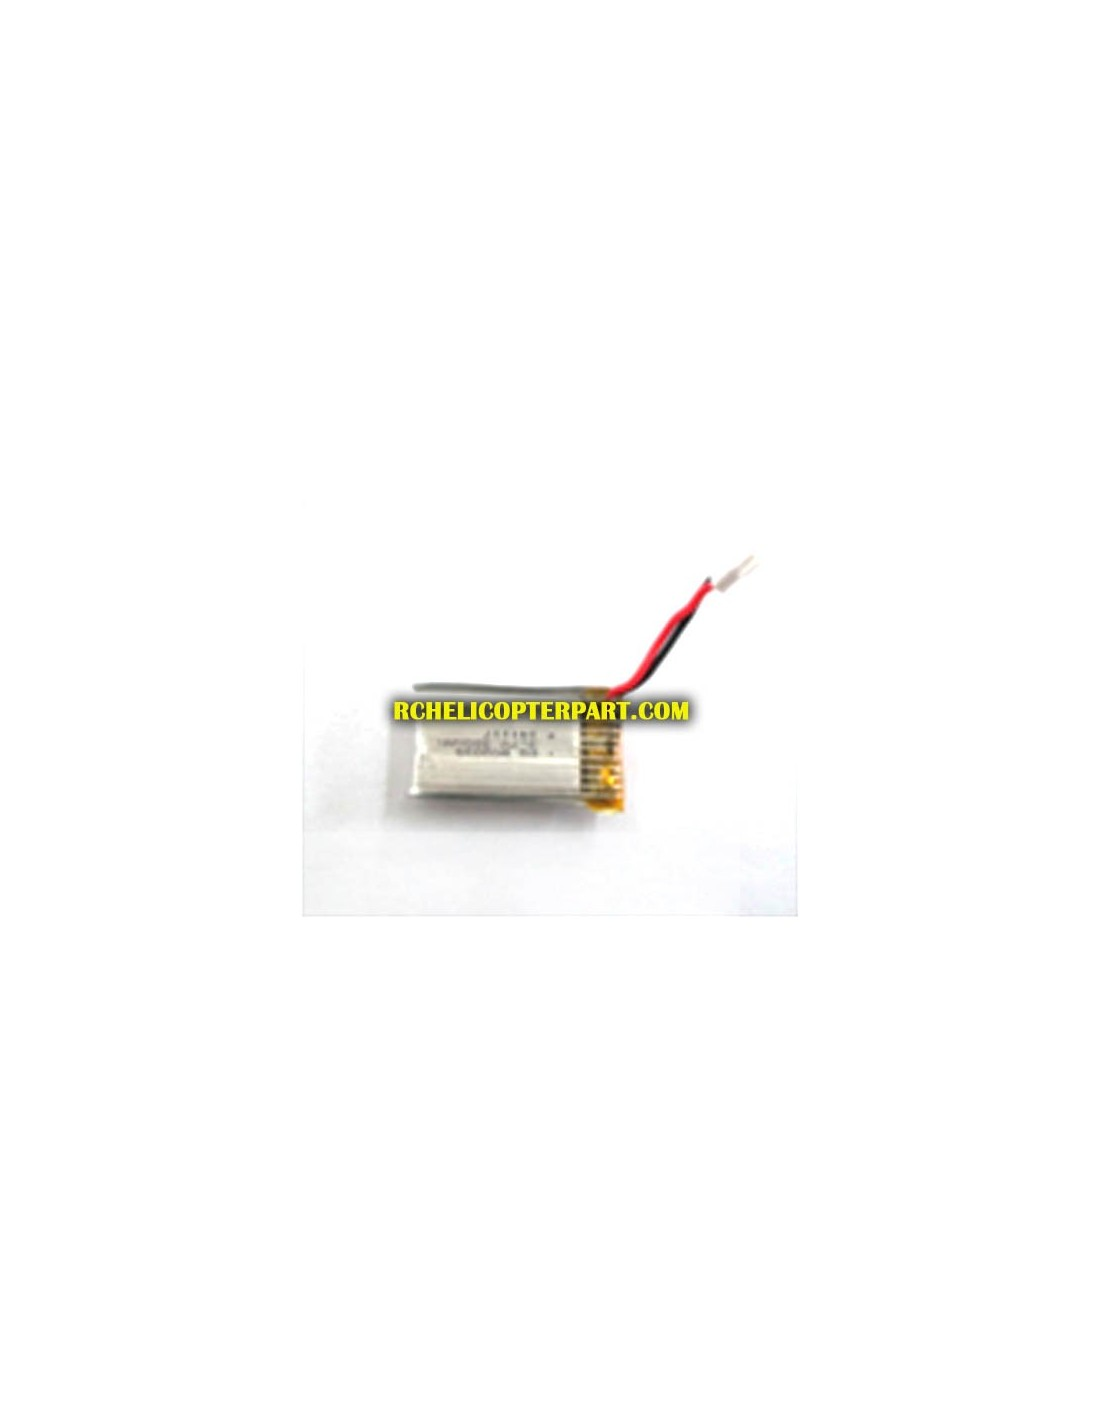 udi rc helicopter parts html with 431 126 22 Charger Us For Skyrover Yw857126 Swift Helicopter on 409 123 01 Main Blade Parts For Sky Rover Yw857123 Swift Helicopter as well New Brushless Motor System Mjx Rc F45 F645 Rc Helicopter Parts P 2097 as well 946 Fx071c 21 Fx071c Parts 4ch Rc Helicopter Parts Receiver Board 0110500712119 in addition Mjx F45 F645 Remote Control Transmitter Of Version 2 P 4905 also 476 123 23 Cabin Parts For Sky Rover Swift Rc Helicopter.